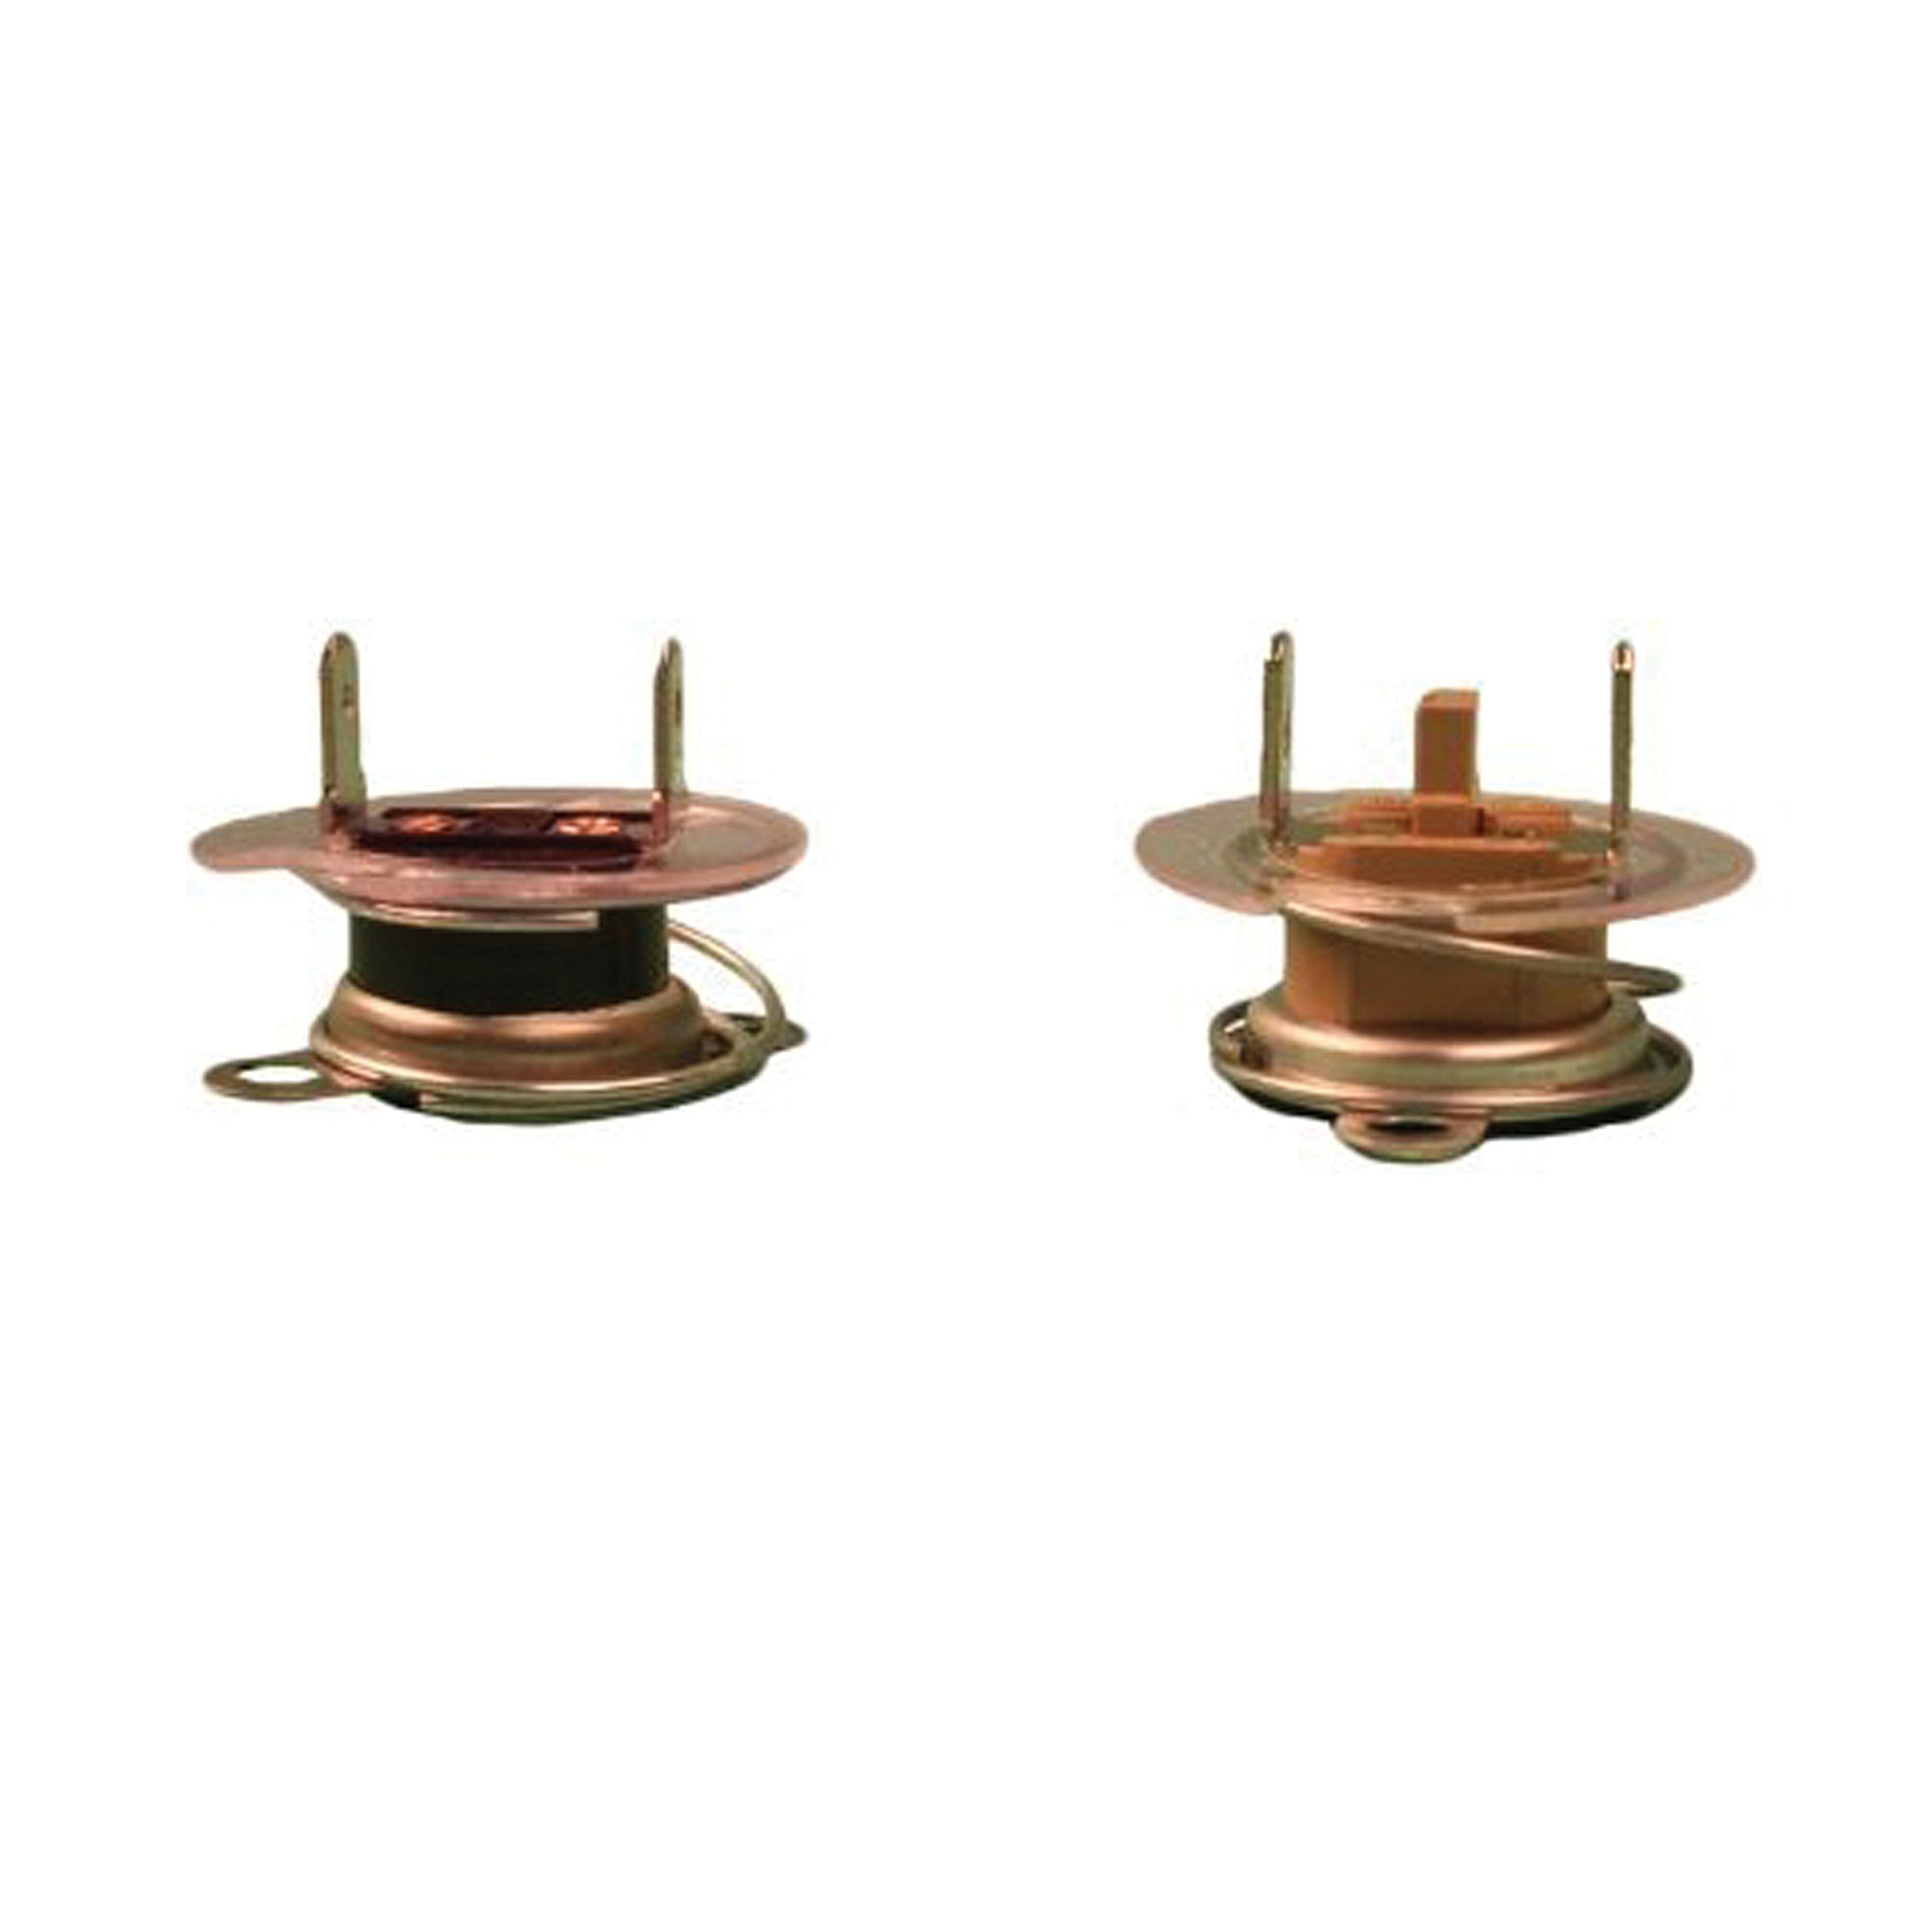 Atwood 91873 Pilot Water Heater Replacement Parts-Thermostat/E.C.O. 110 VAC by Atwood